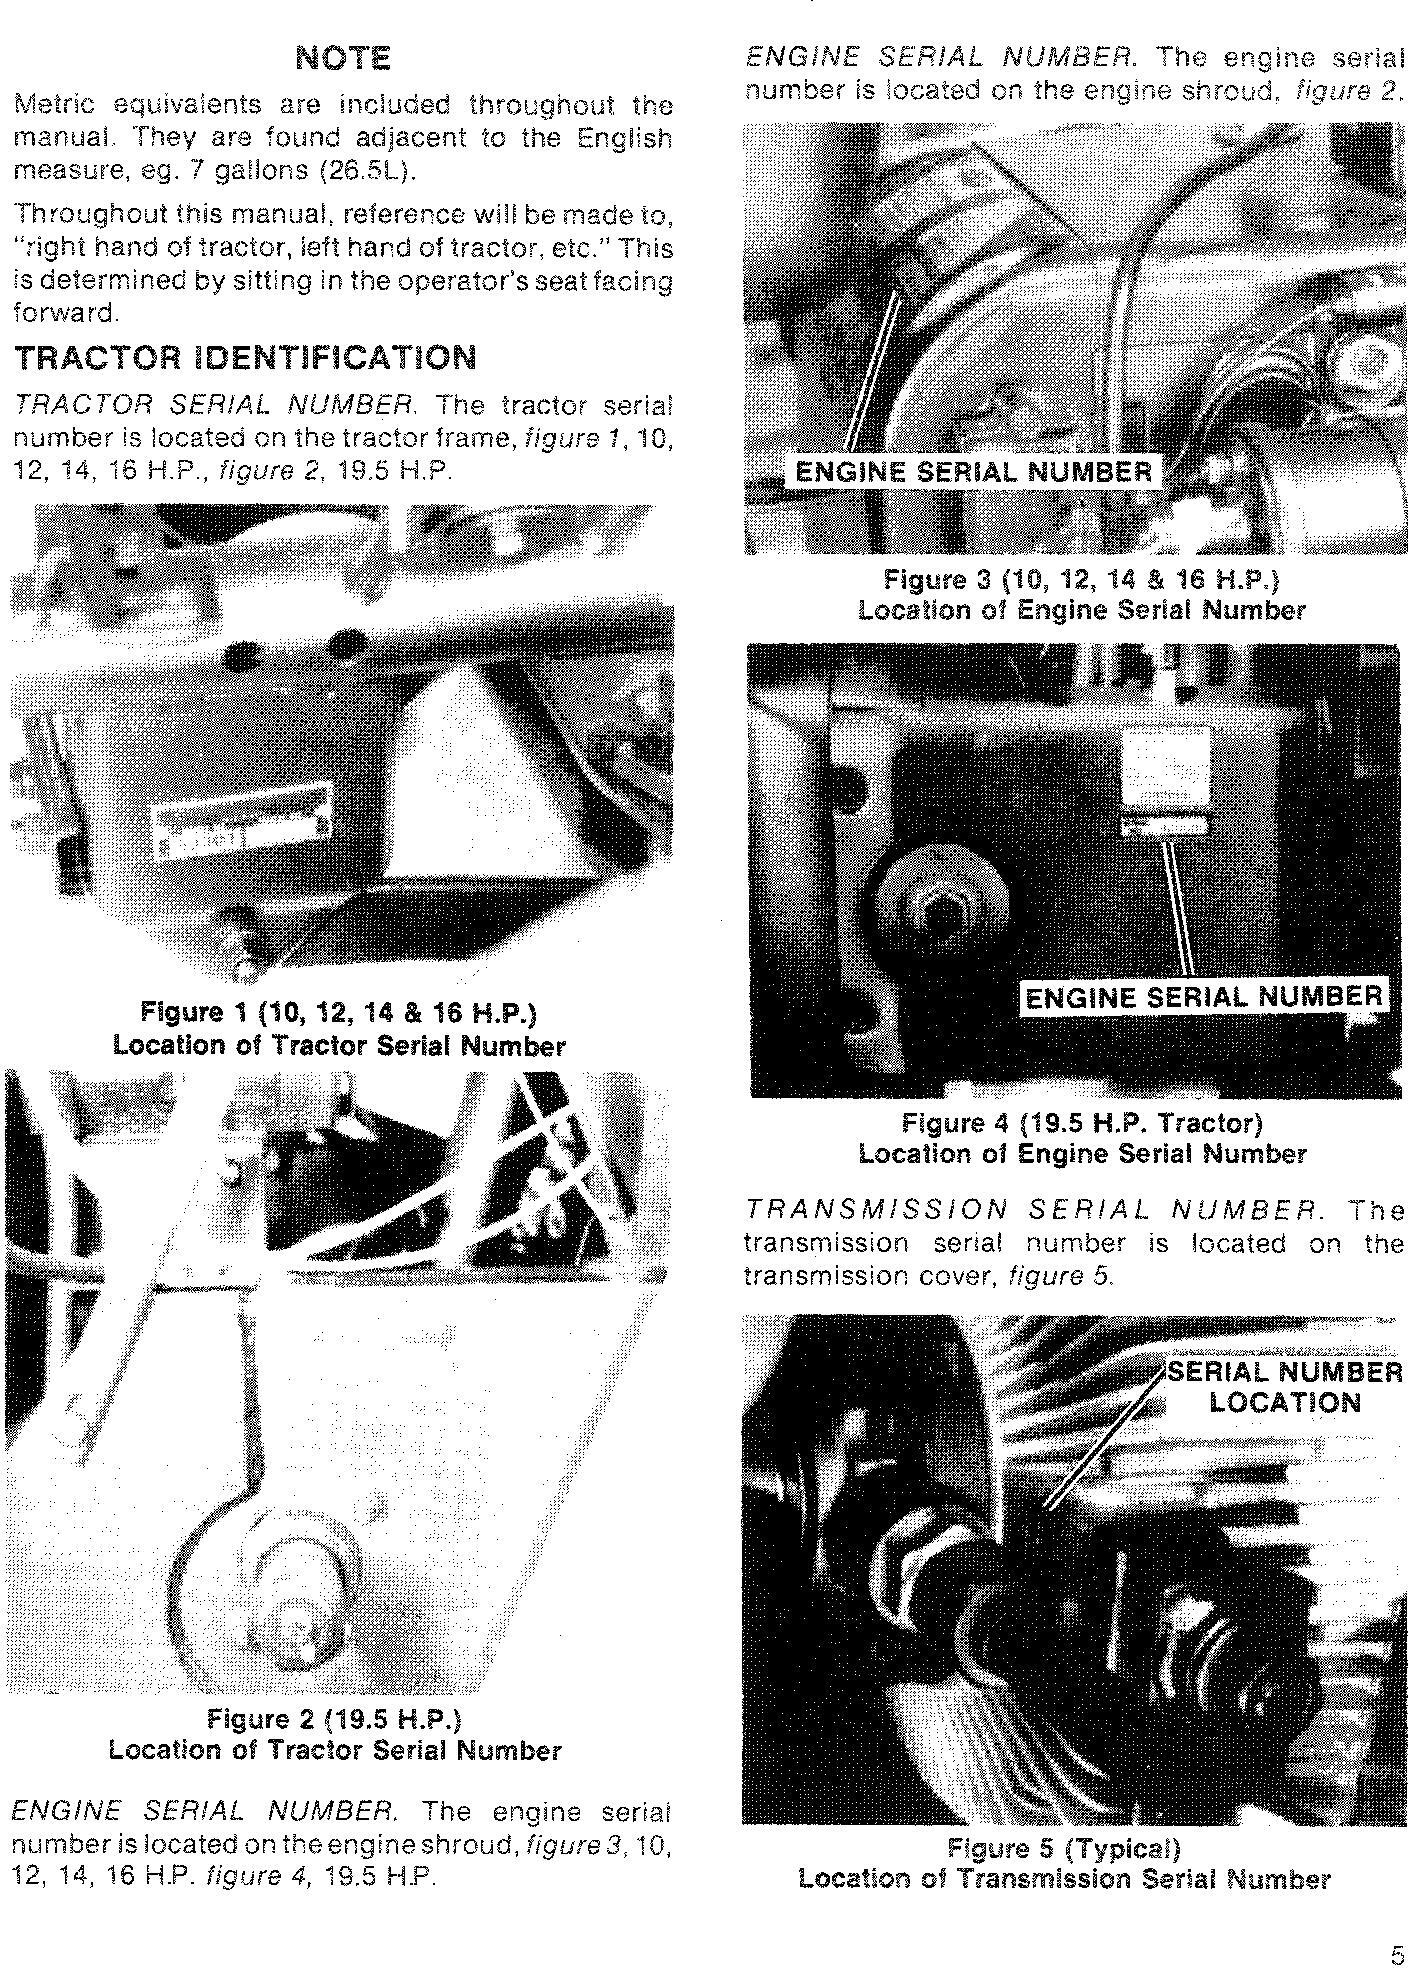 Ford 100, 120, 125, 145, 165, 195 Lawn & Garden Tractor Service Manual - 1